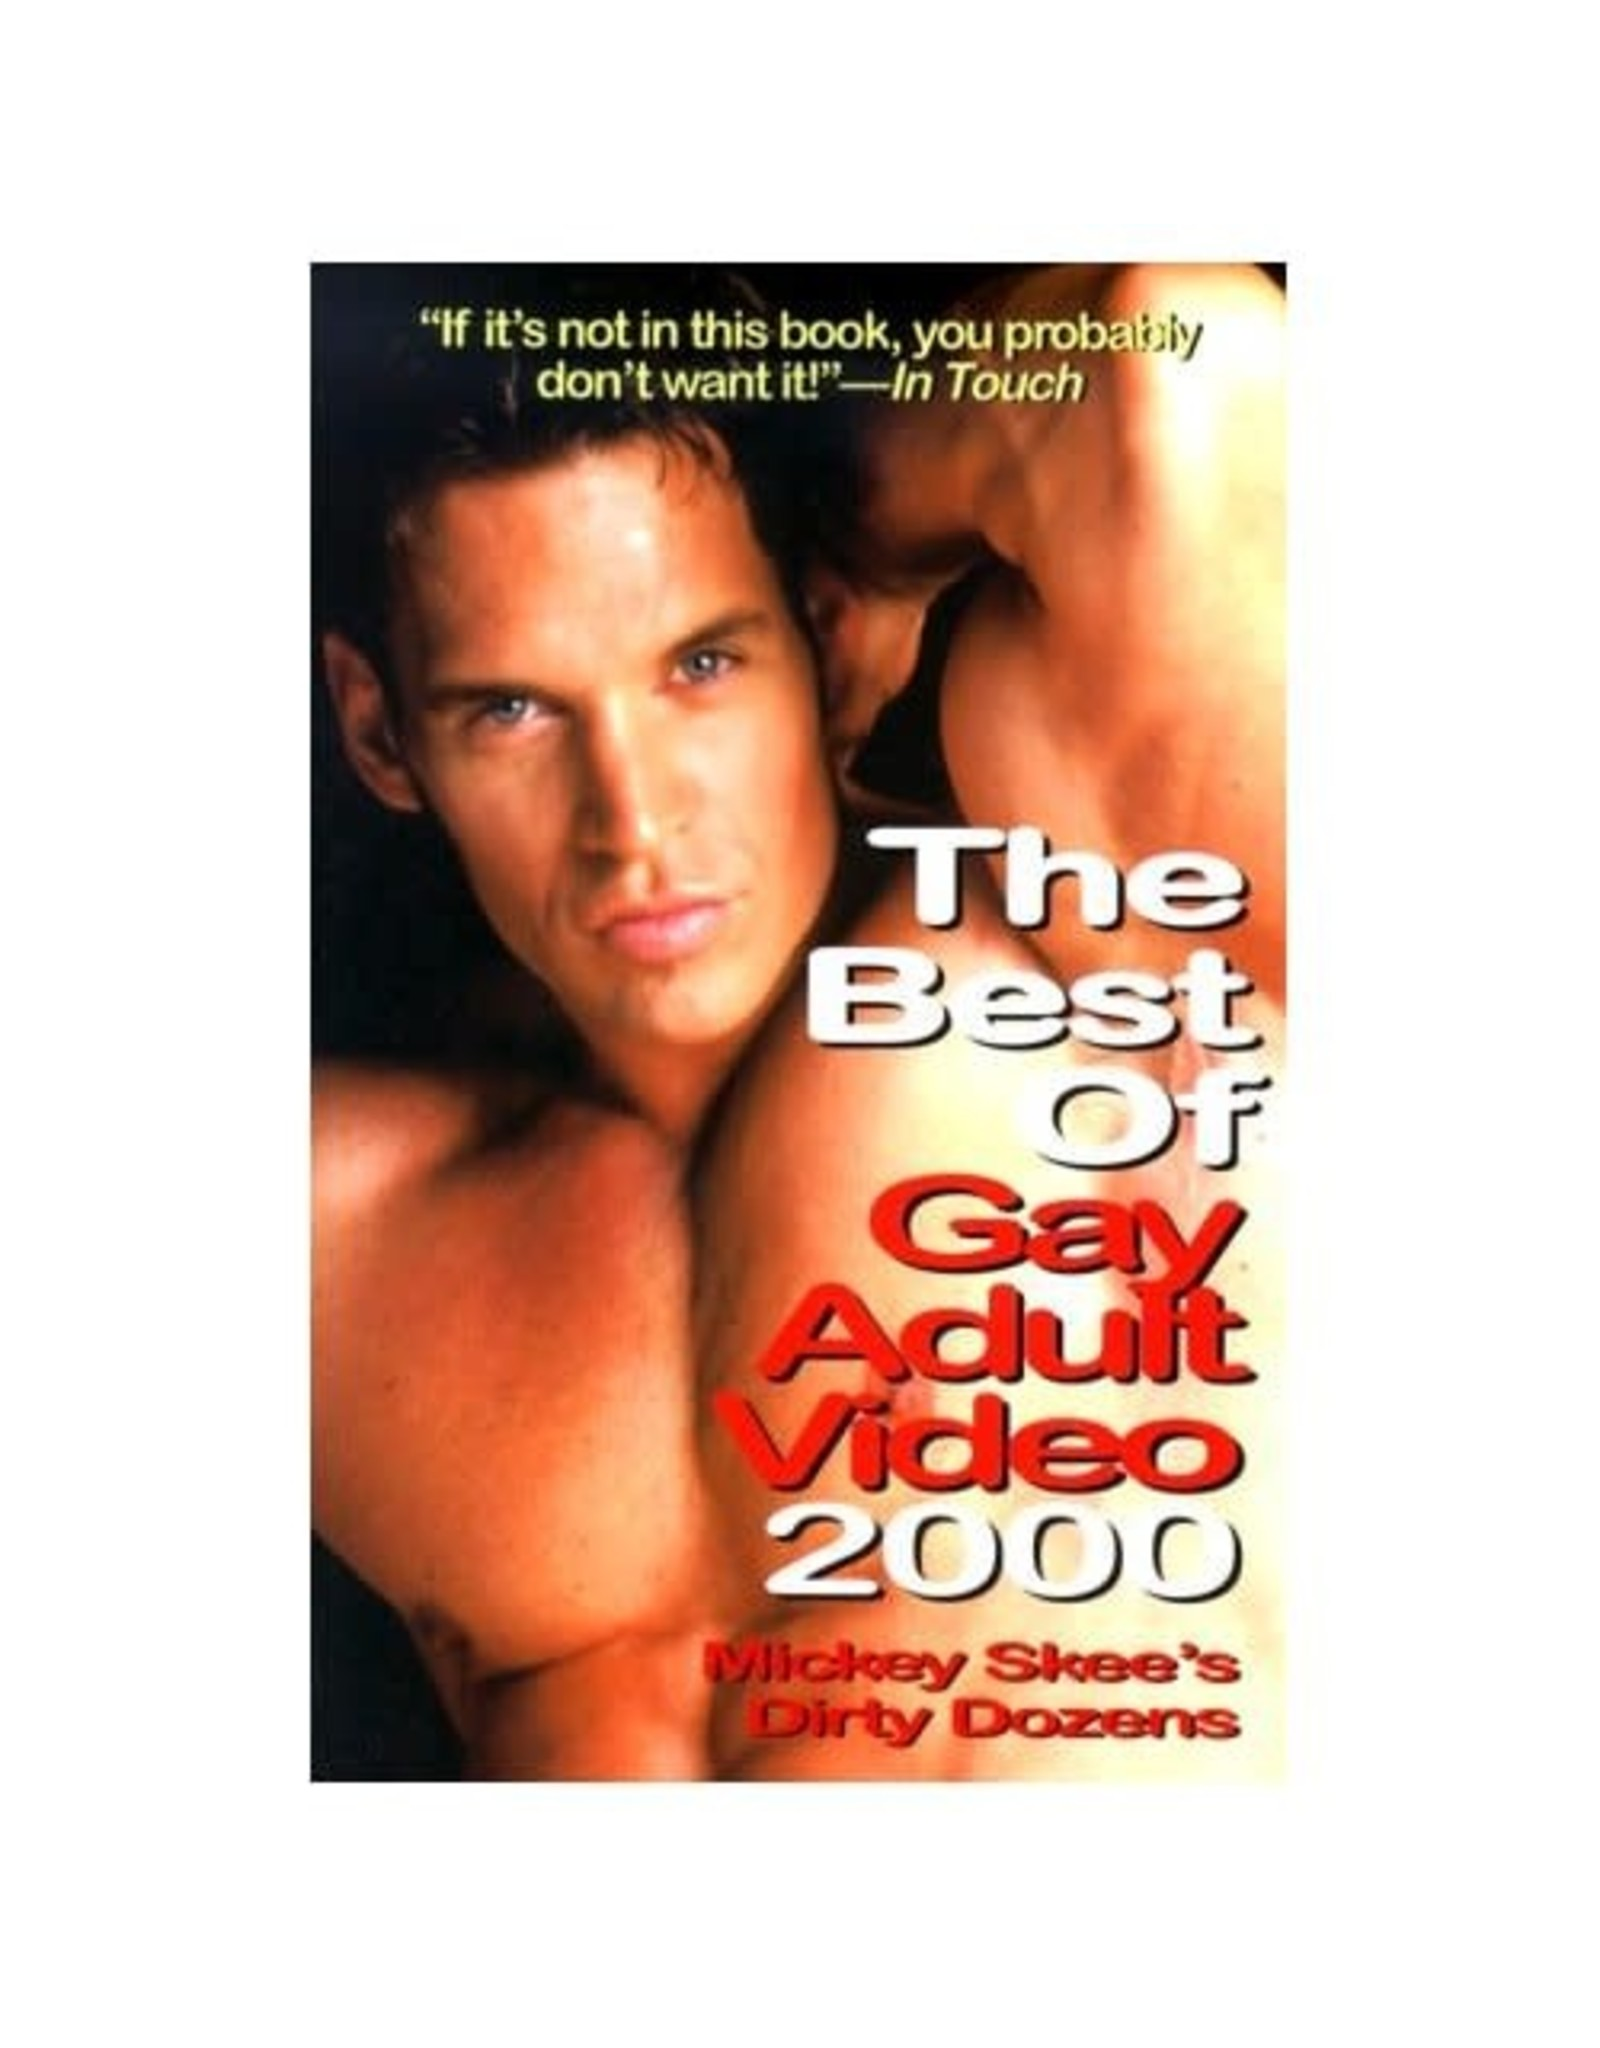 BEST OF GAY ADULT VIDEO 2000